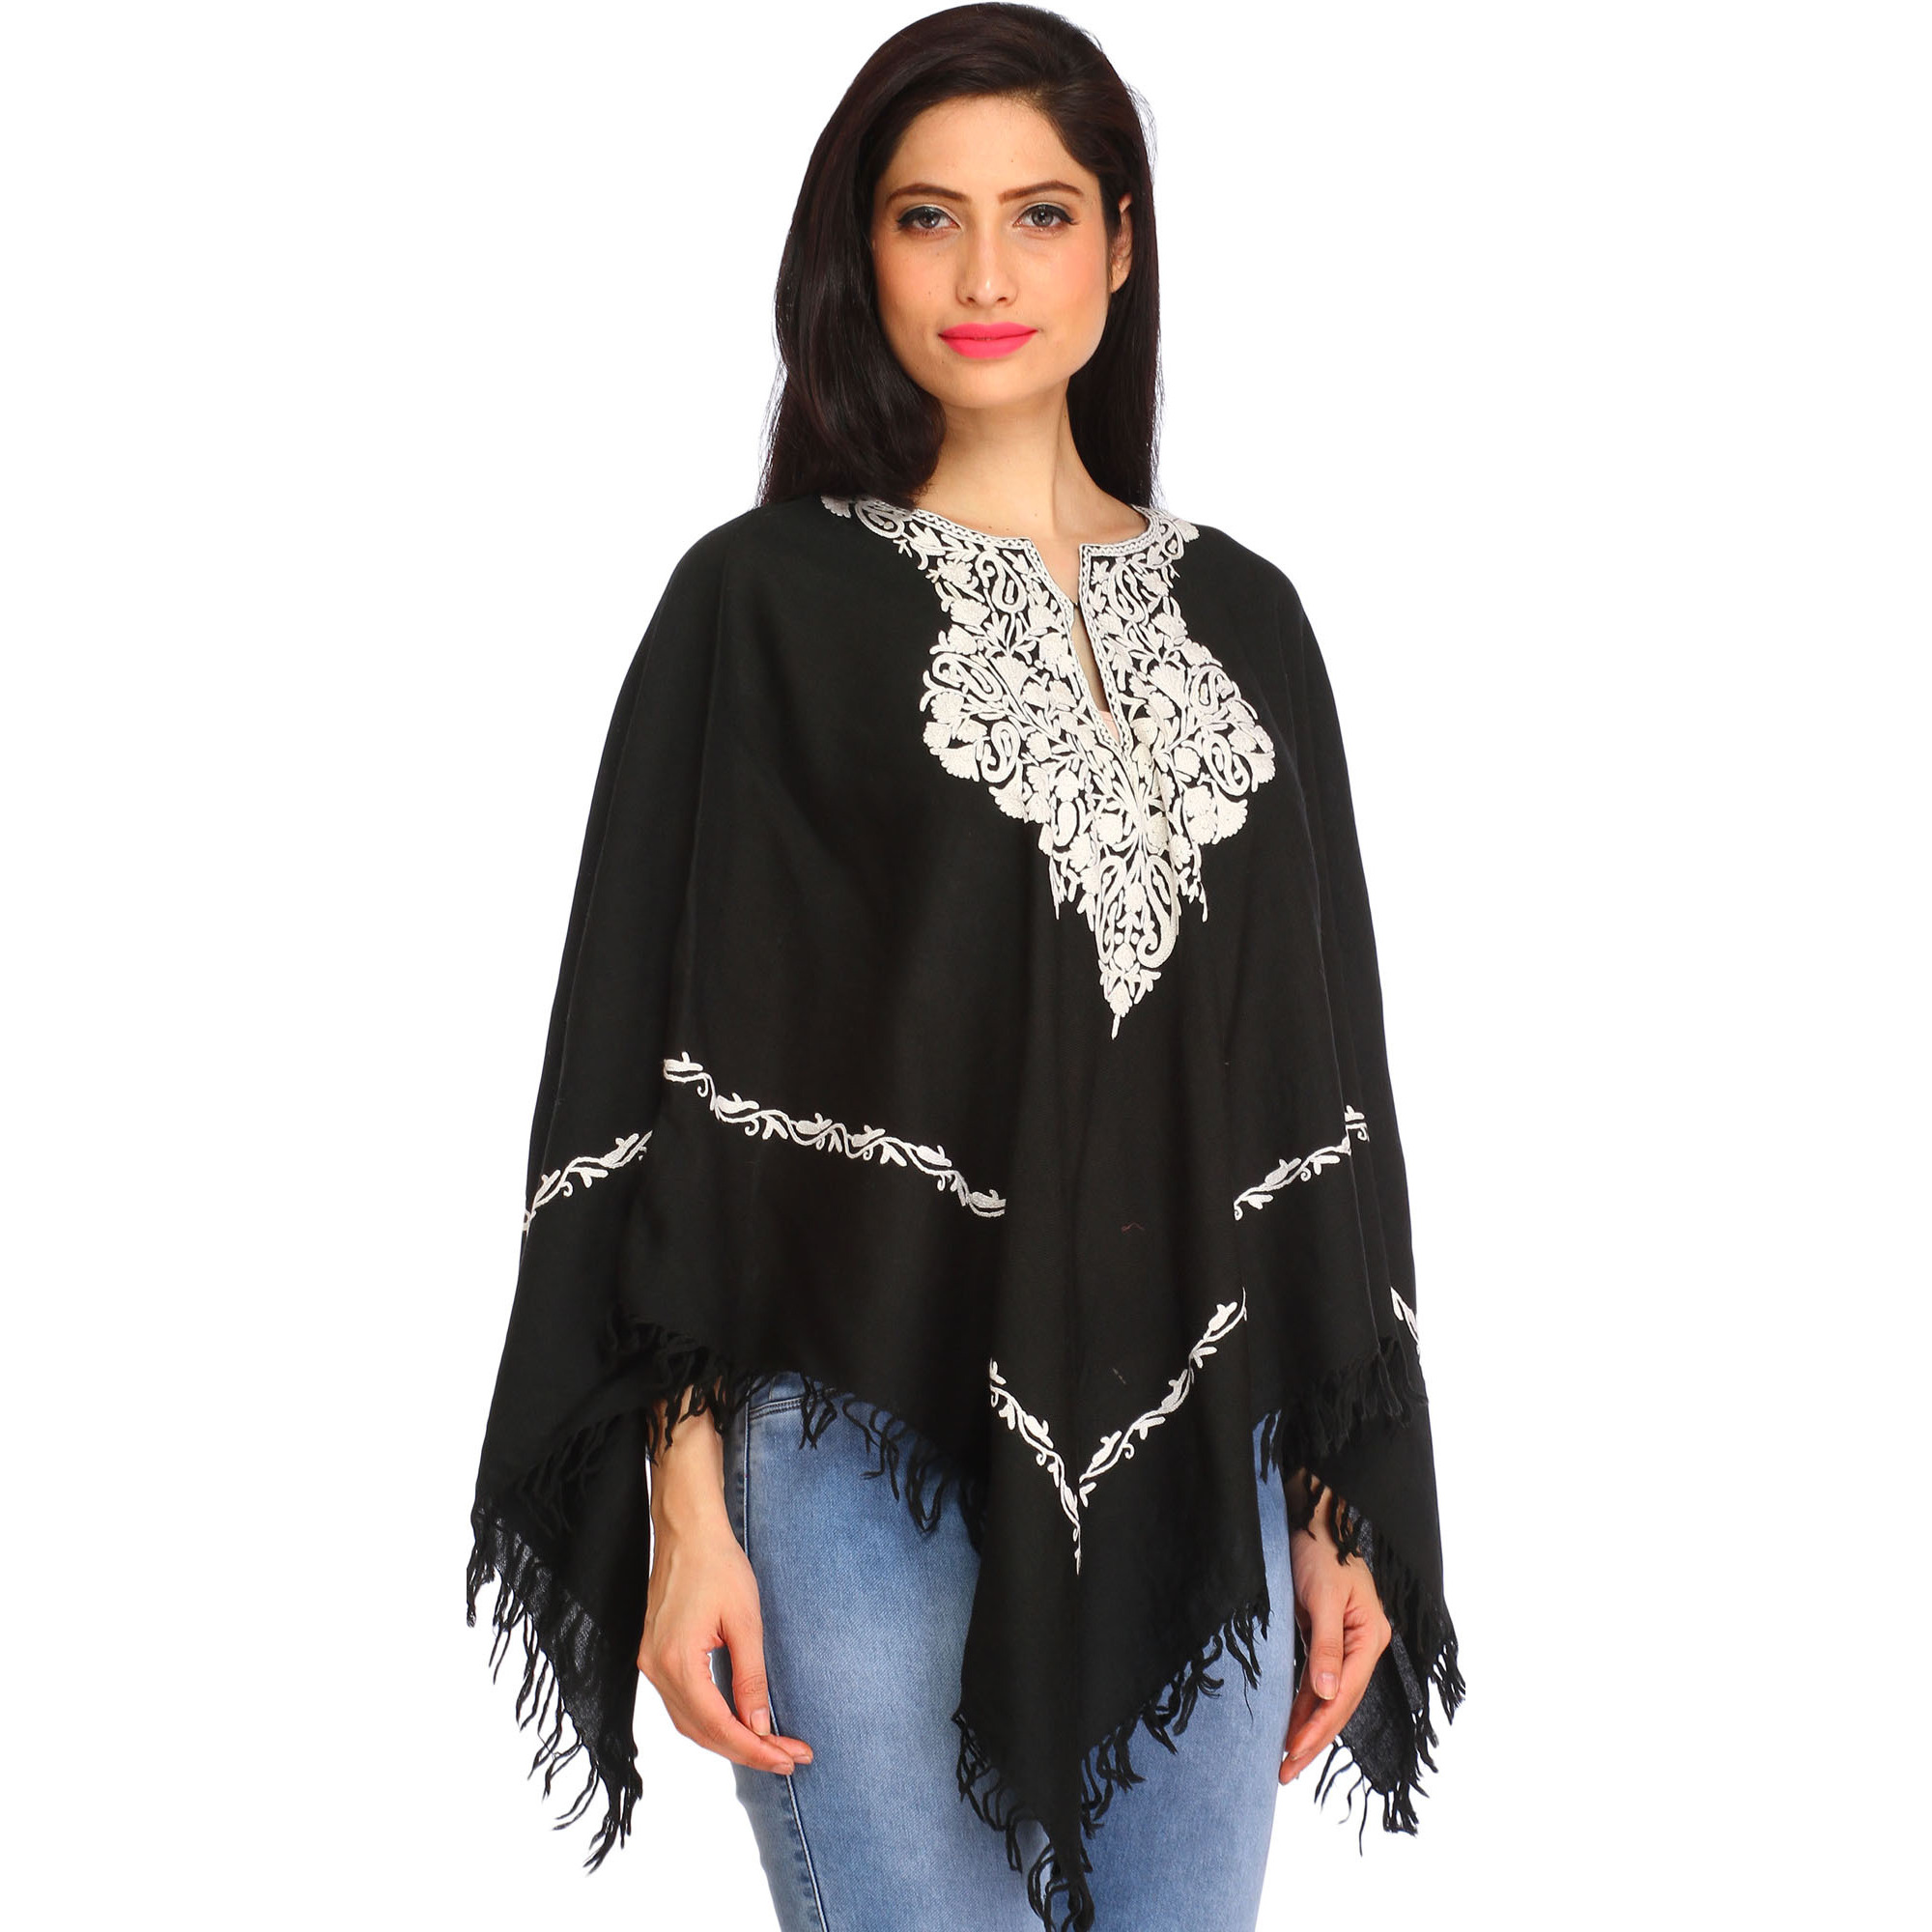 Black and White Poncho from Kashmir with Ari Embroidered Paisleys on Neck